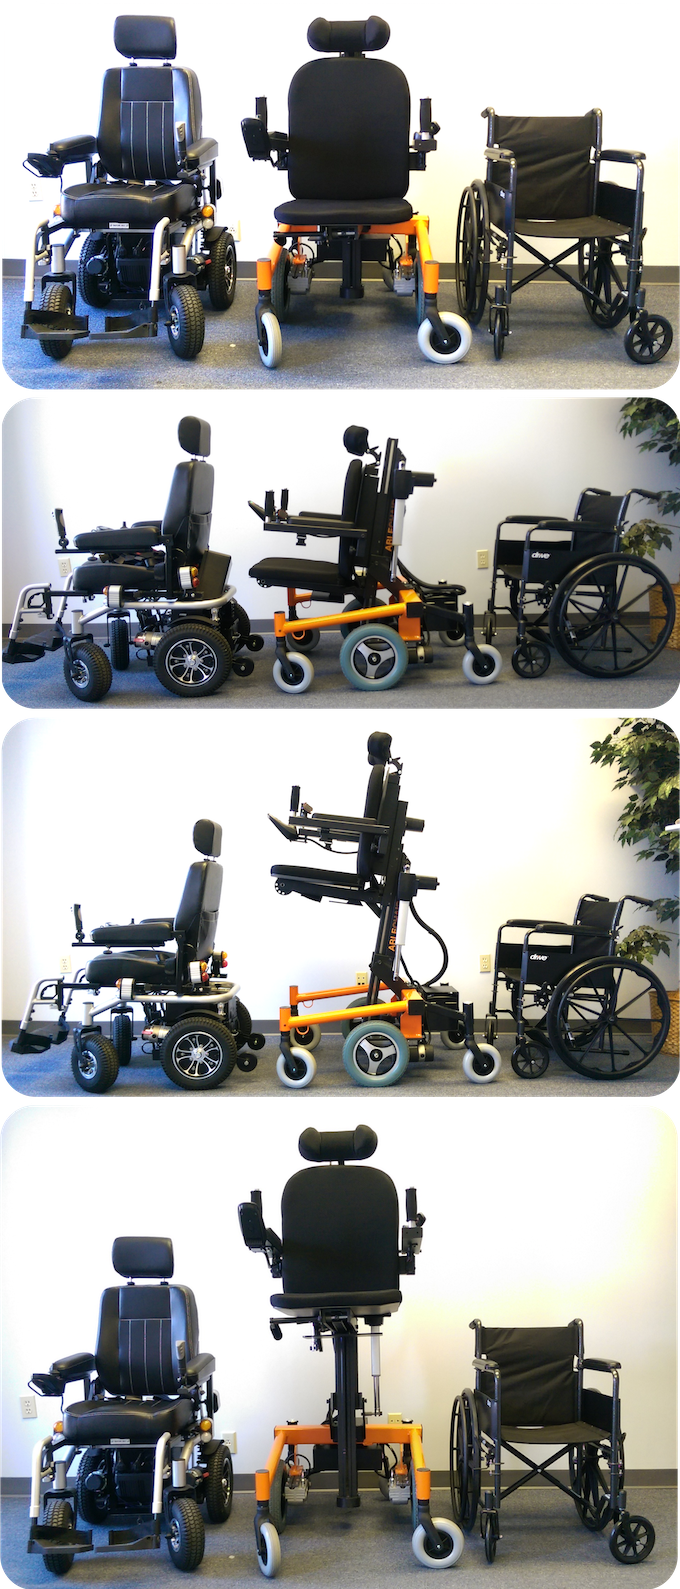 Size comparison with conventional wheelchairs